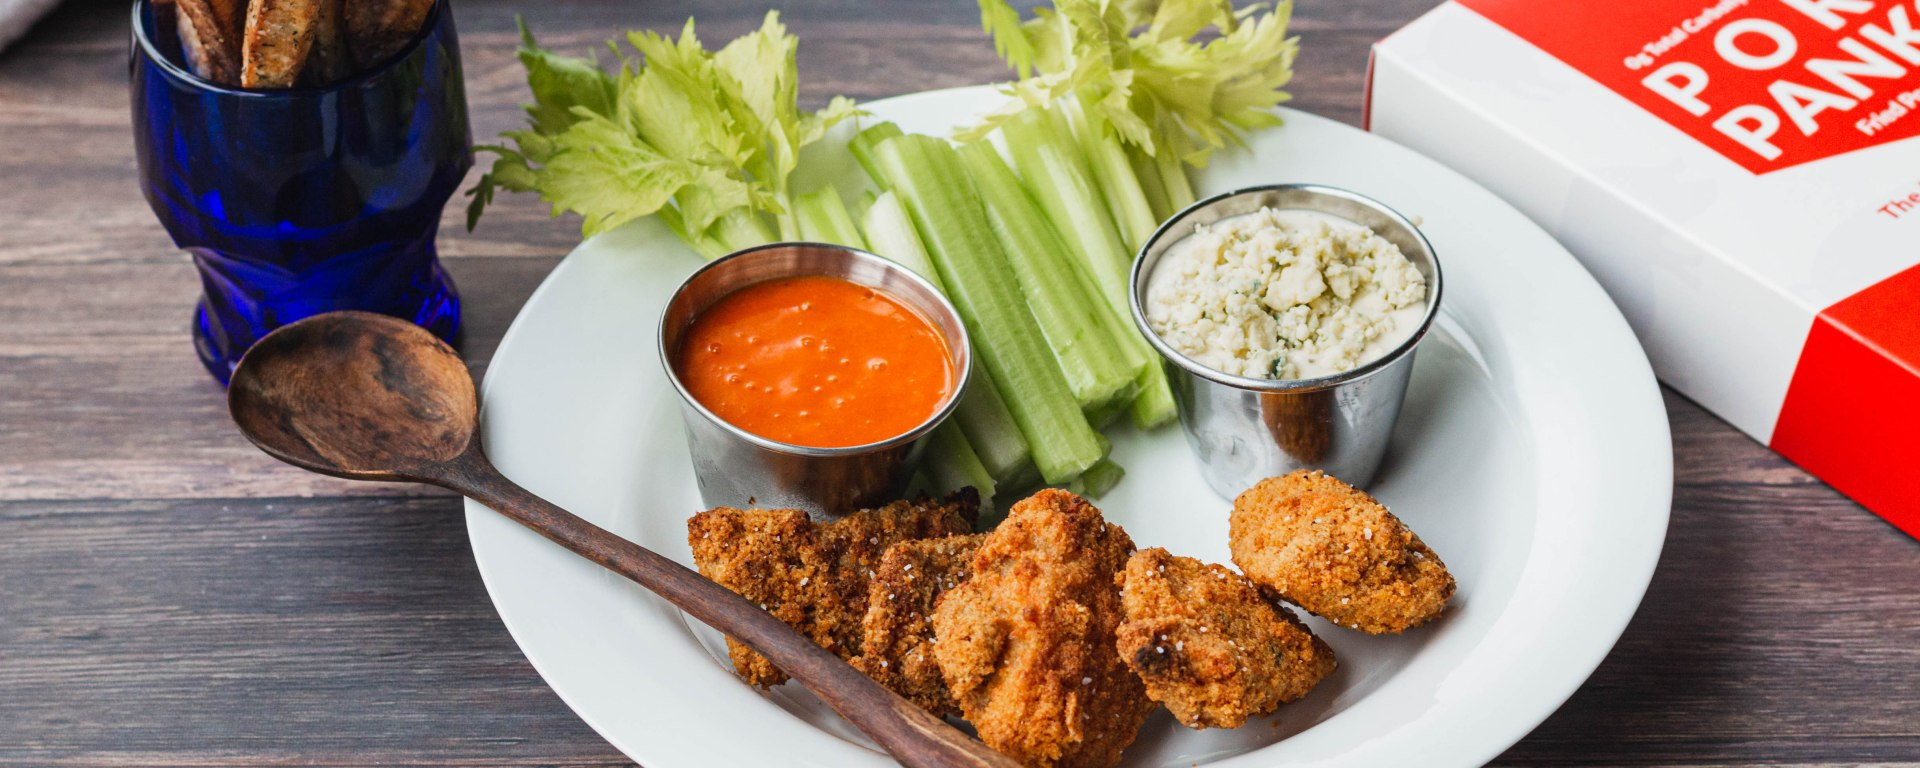 Bowl with paleo chicken nuggets, blue cheese dressing, habanero wing sauce, and celery